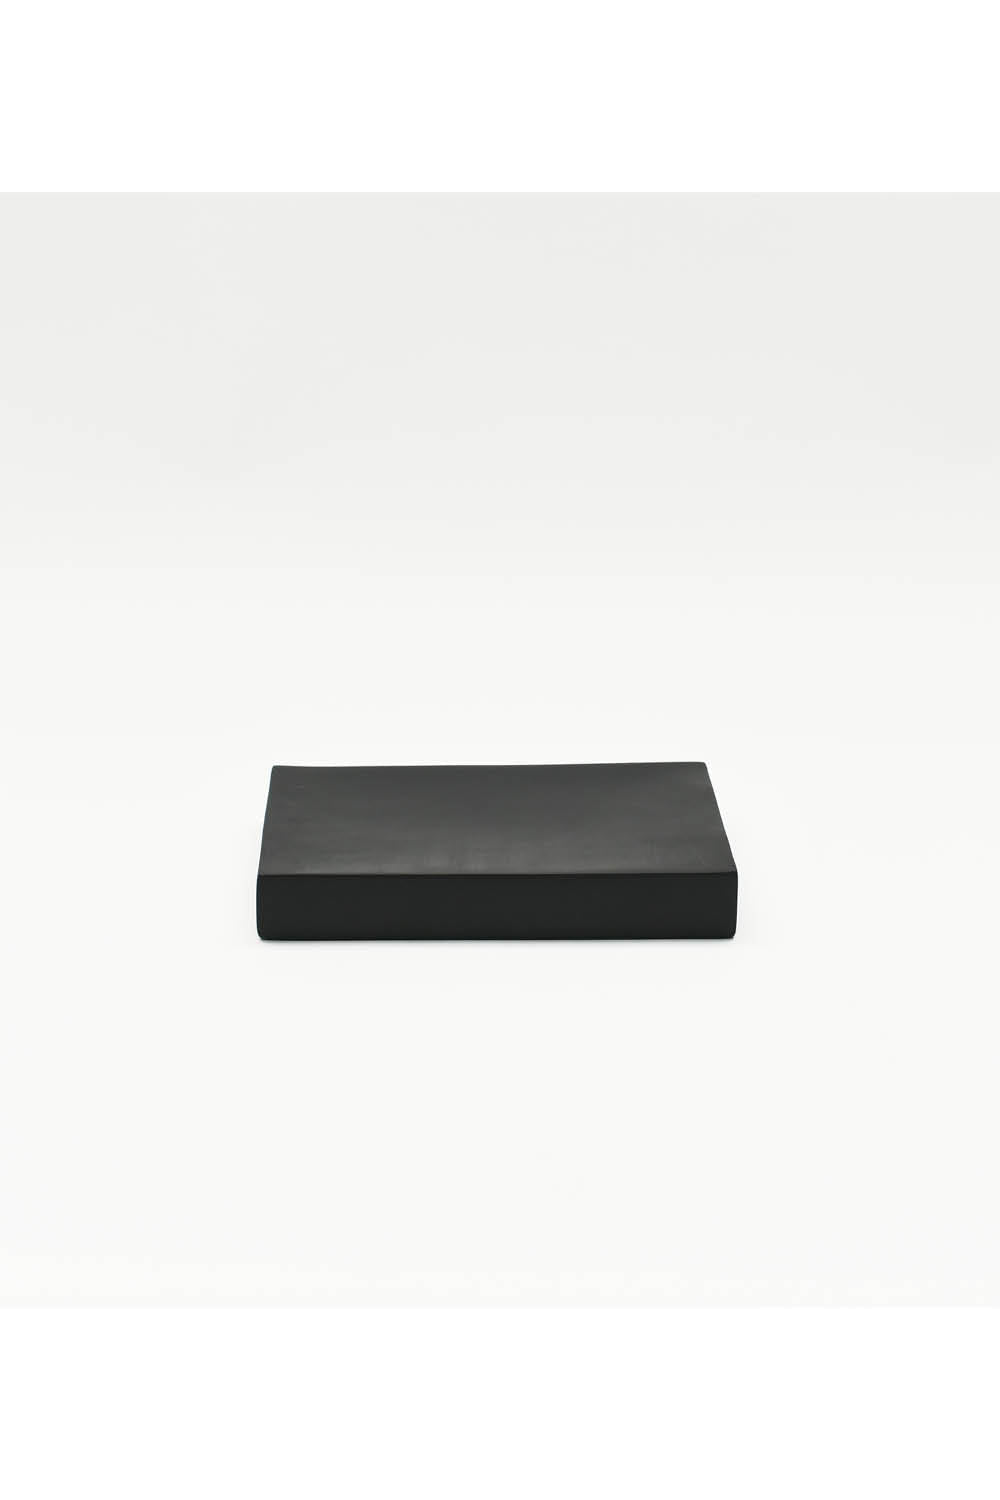 A5 Paper Size Platter in Black